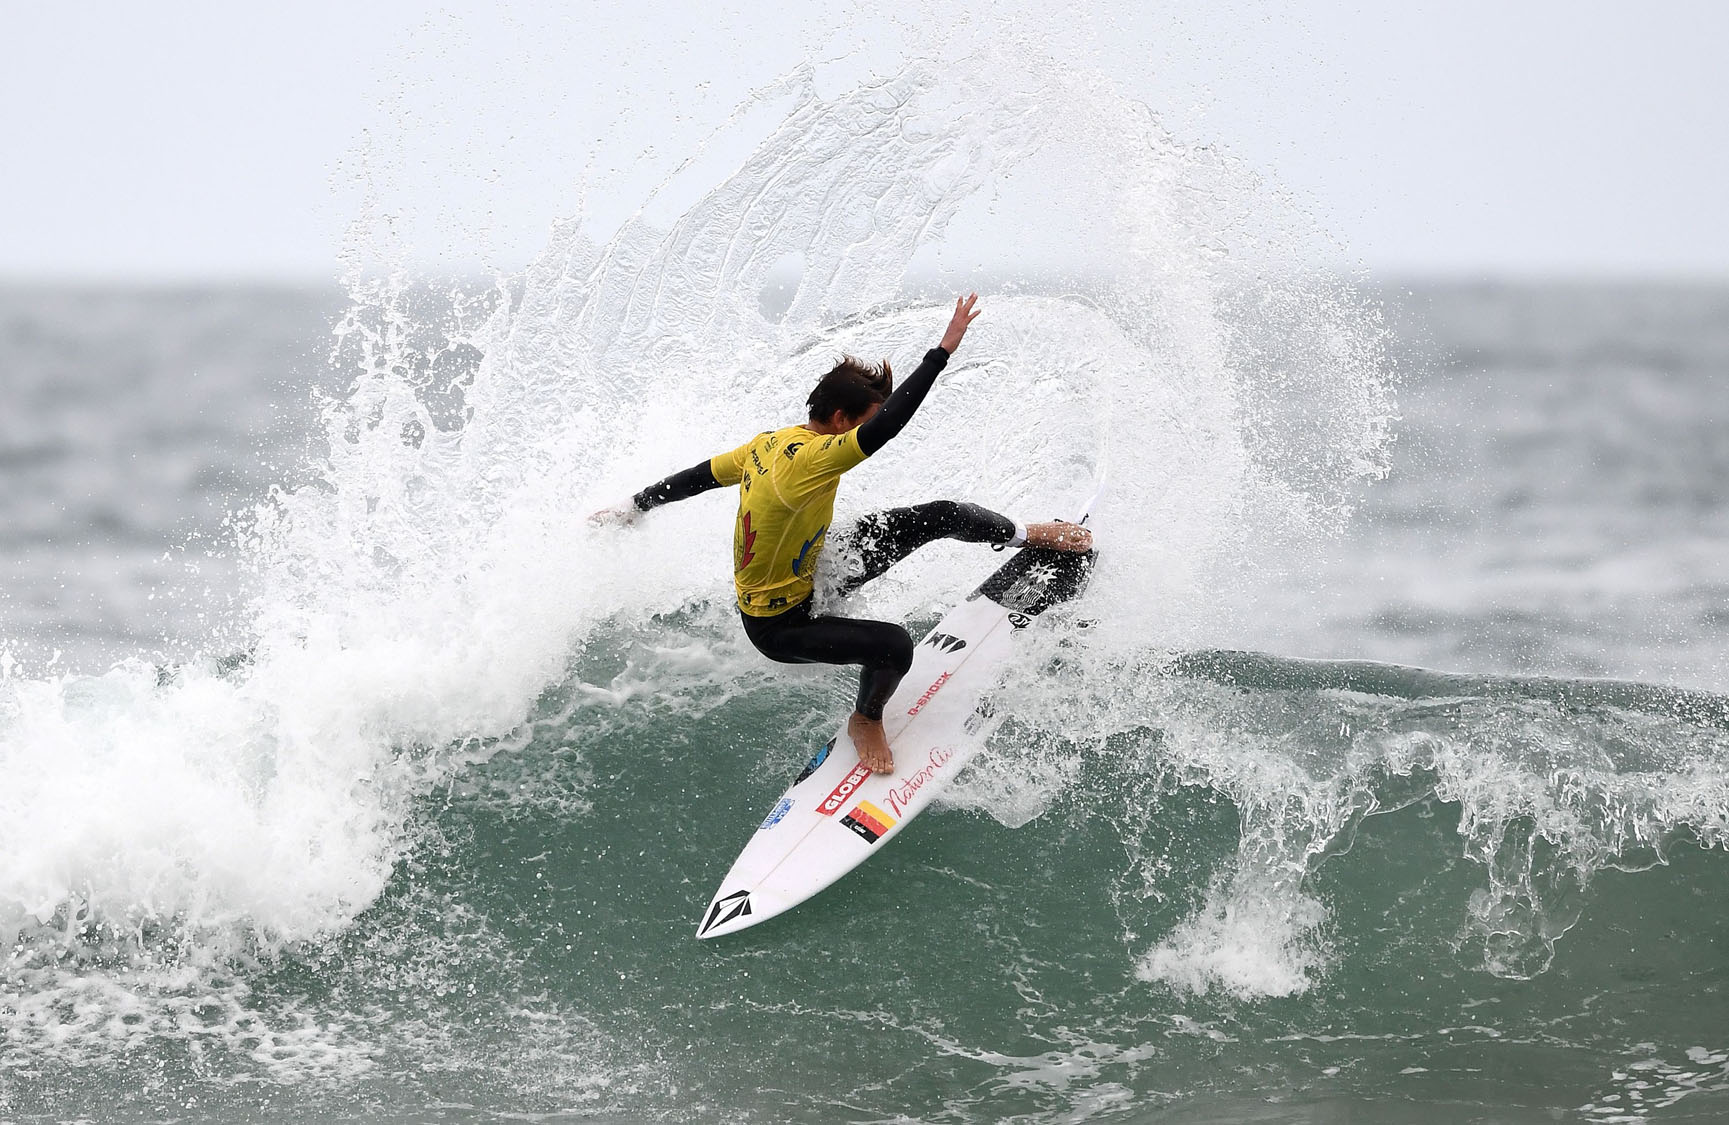 ISA World Surfing Games in France